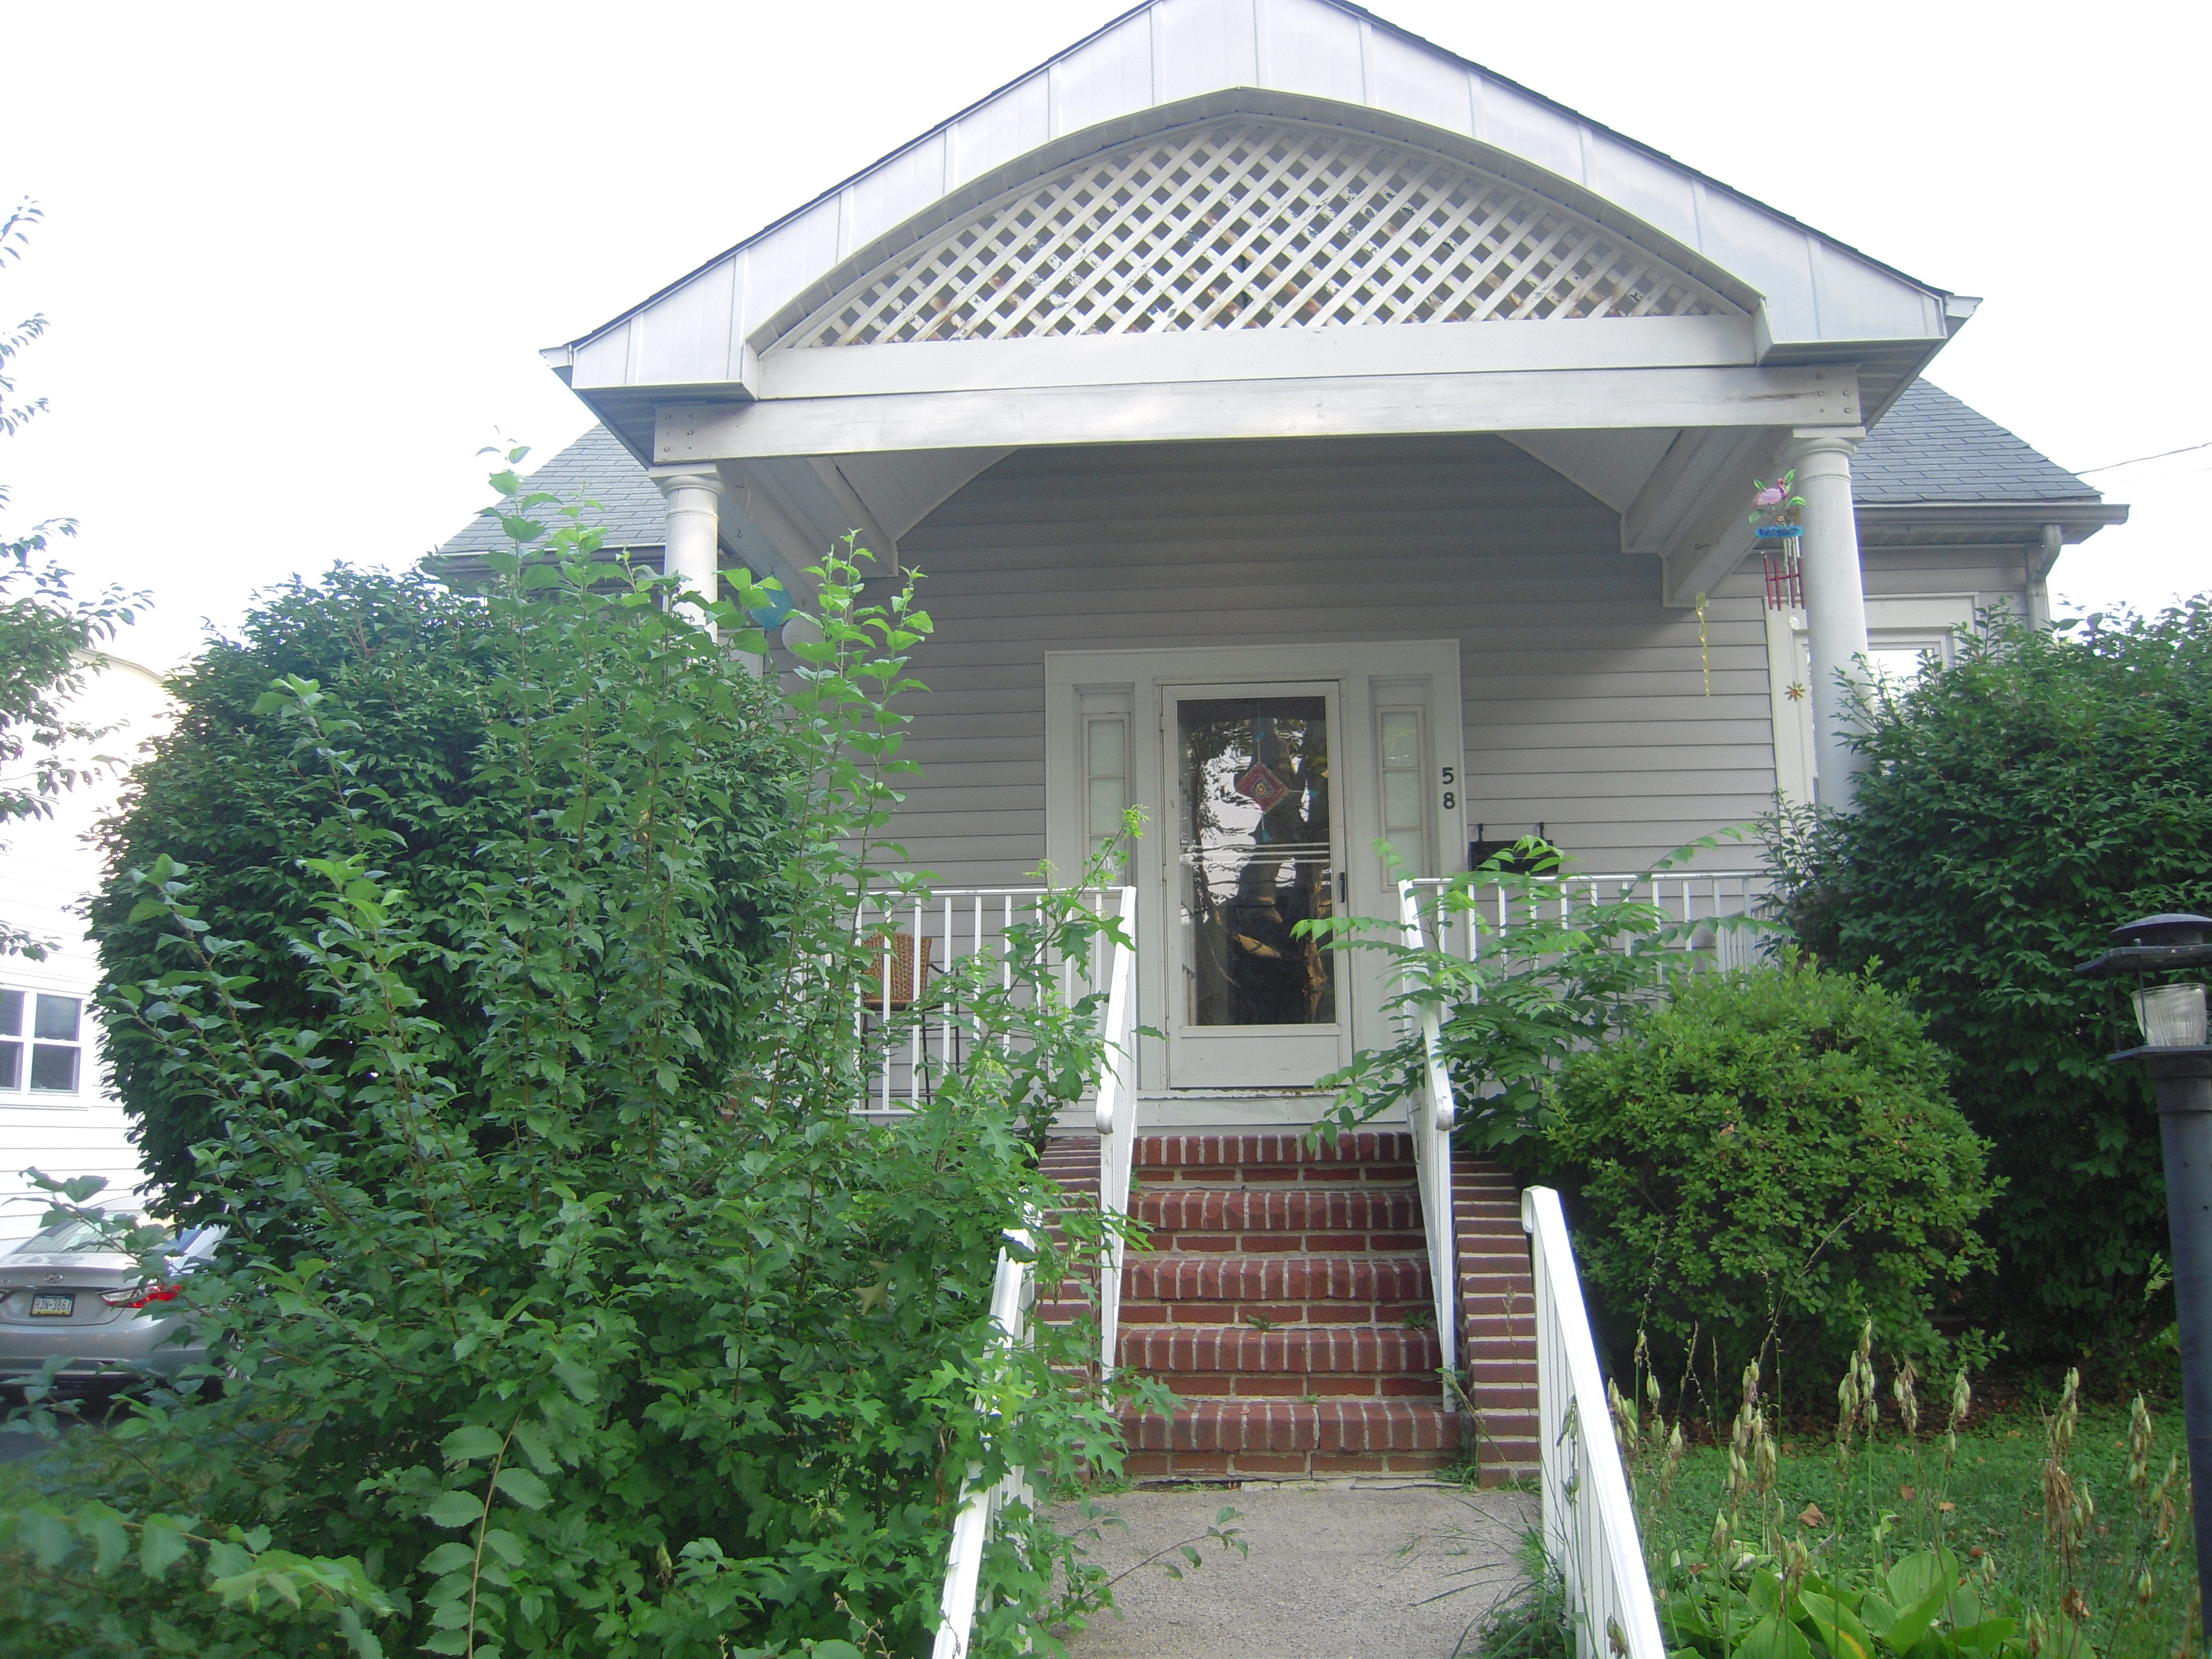 $450 per student (6-7 students), very spacious TCNJ rental house for 2020-21 school year